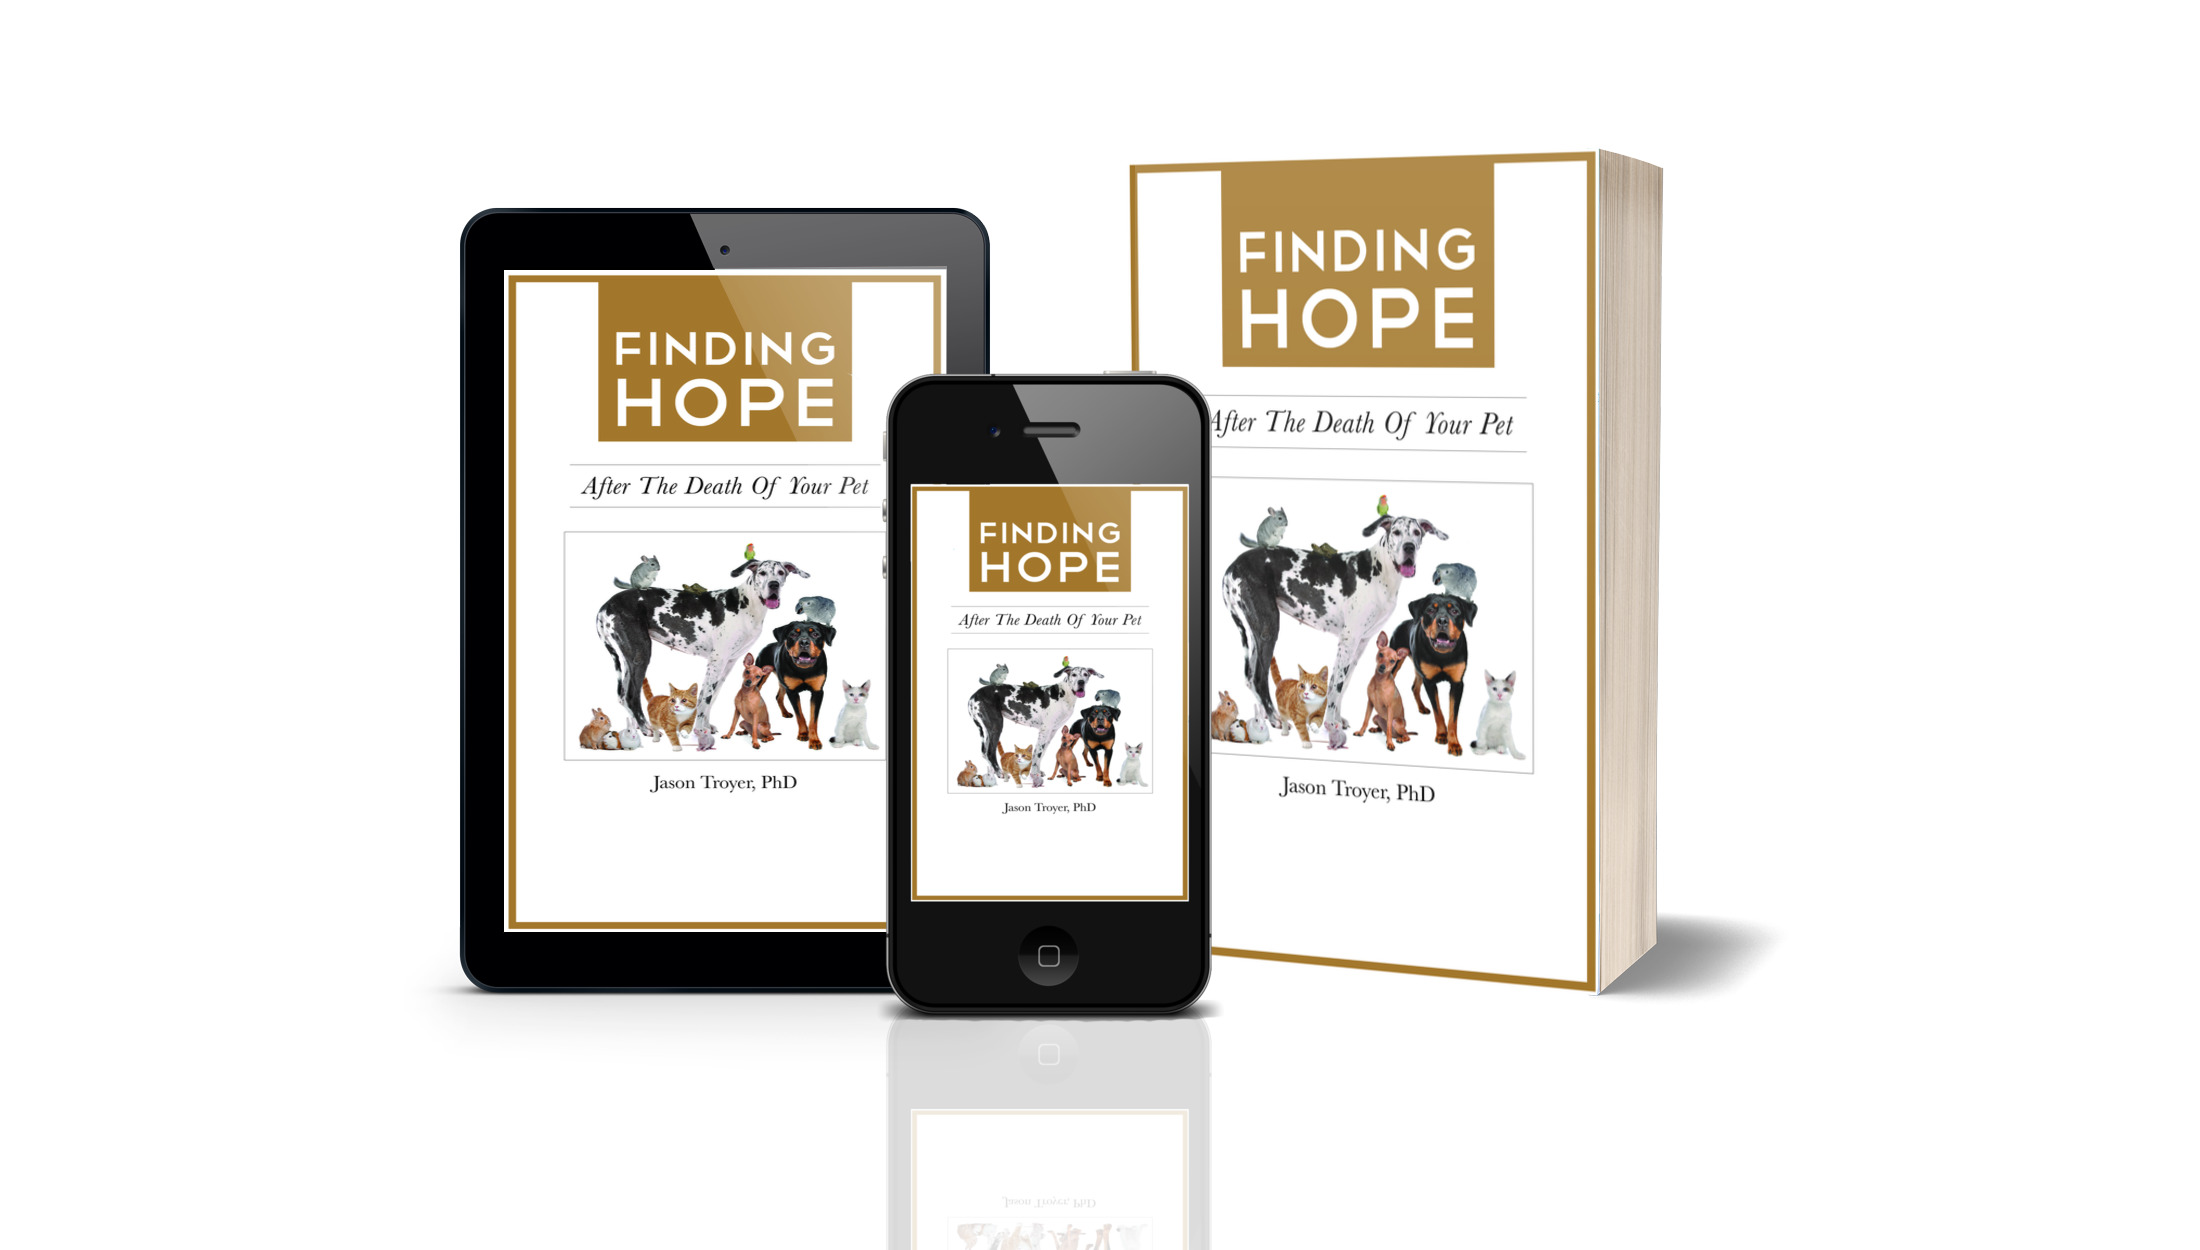 Finding Hope afterthe Loss of a Pet - Click Here to Download